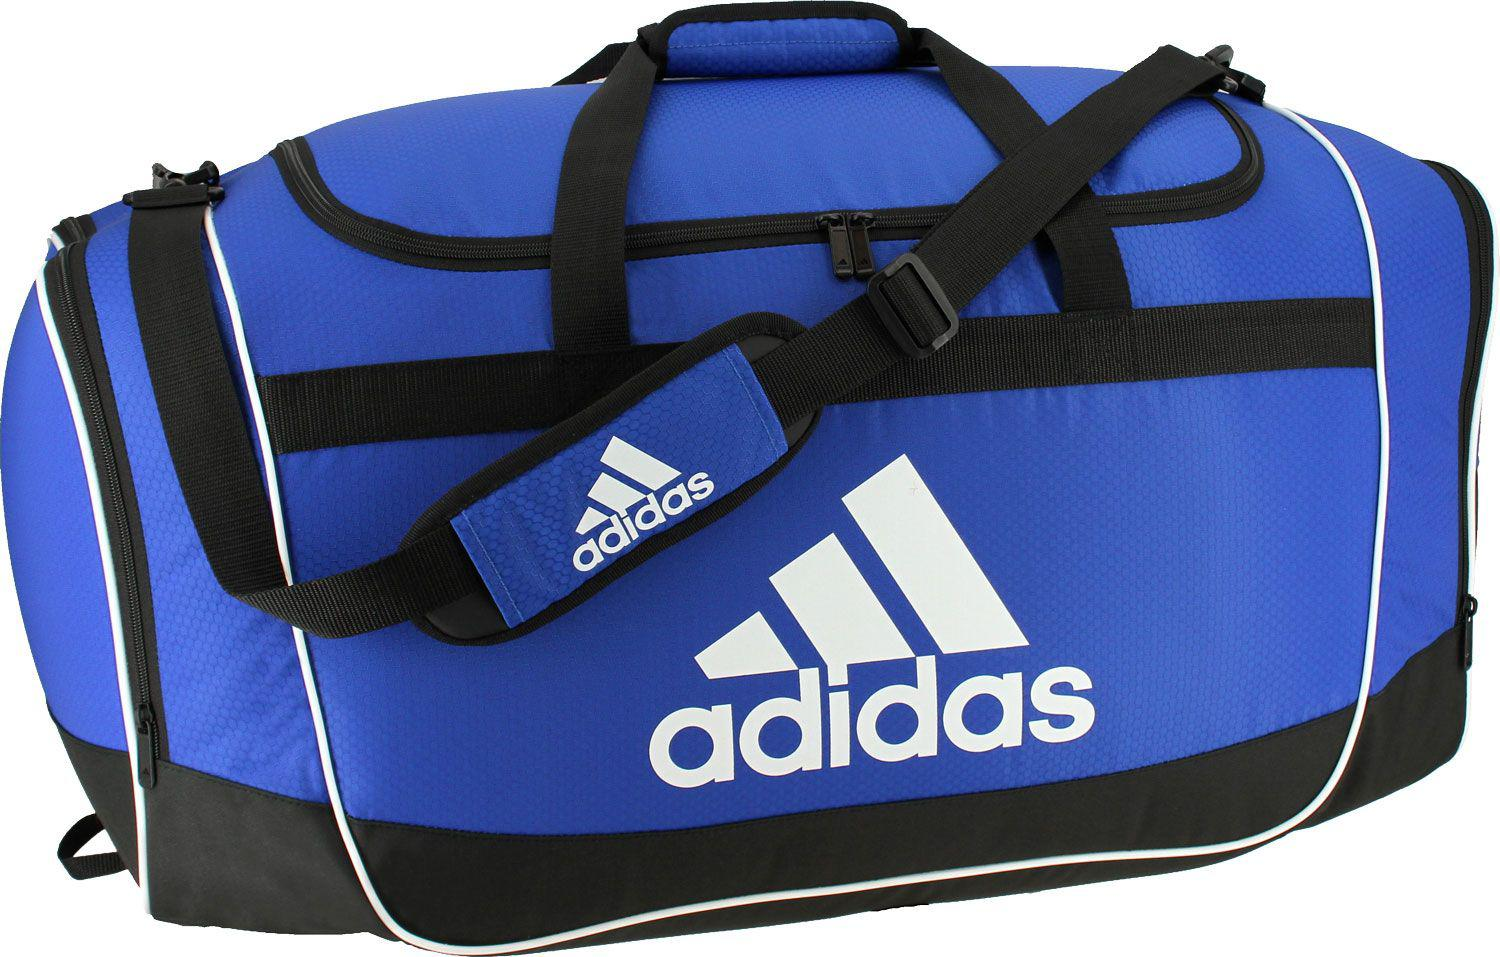 Lyst - adidas Defender Ii Large Duffle Bag in Blue for Men 2419788d5932e